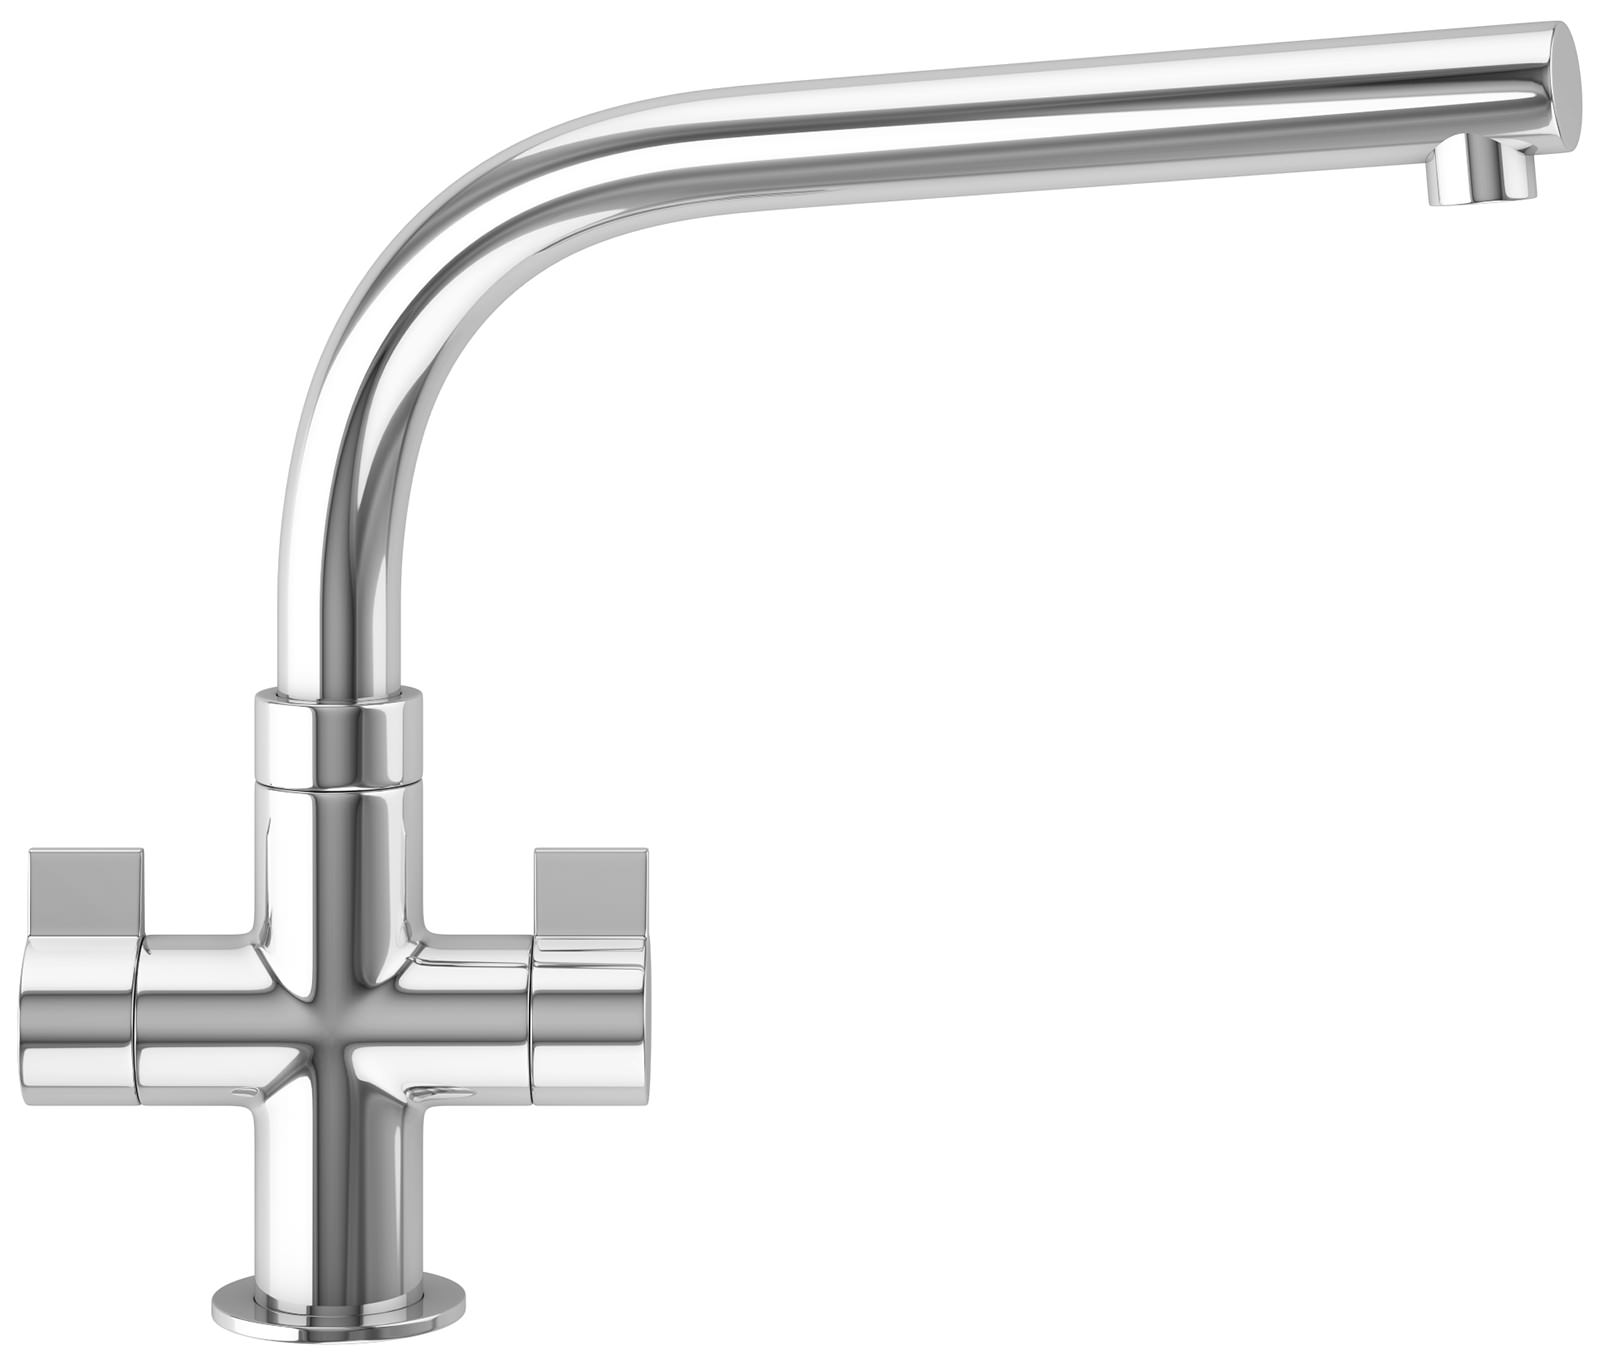 Cheome Mono Kitchen Tap